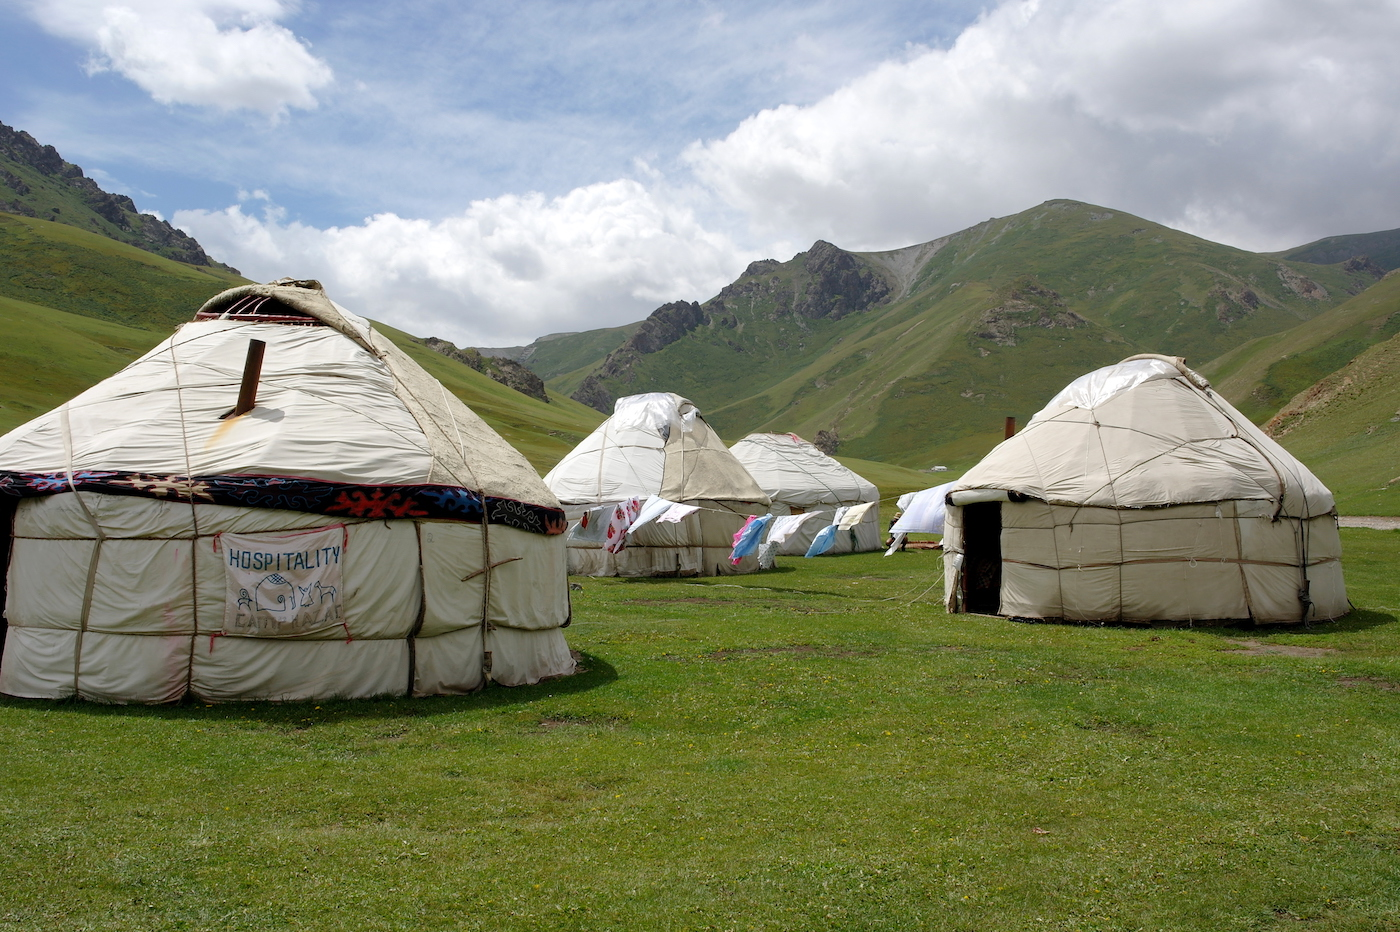 kirgizie backpacken slapen in een yurt